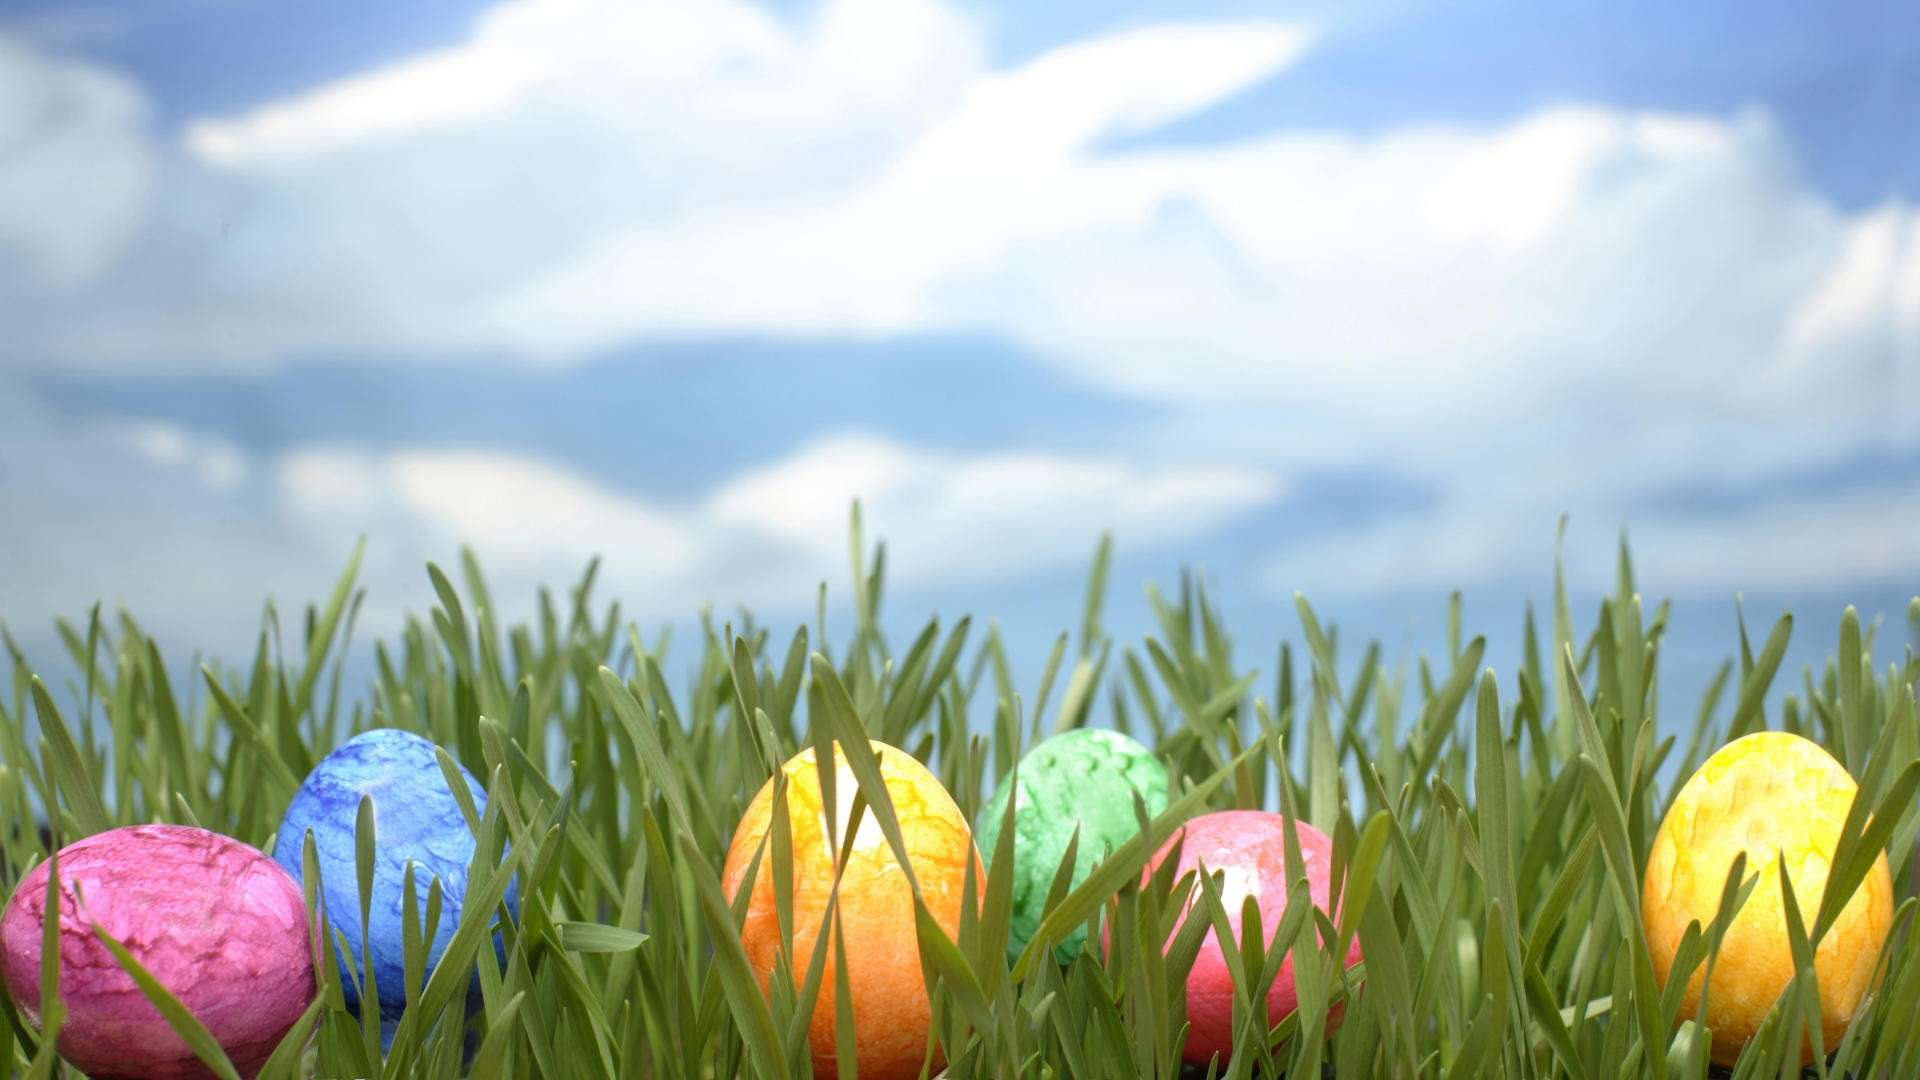 15 Happy Easter 2018 Wallpapers For Desktop   Easter Sunday 1920x1080